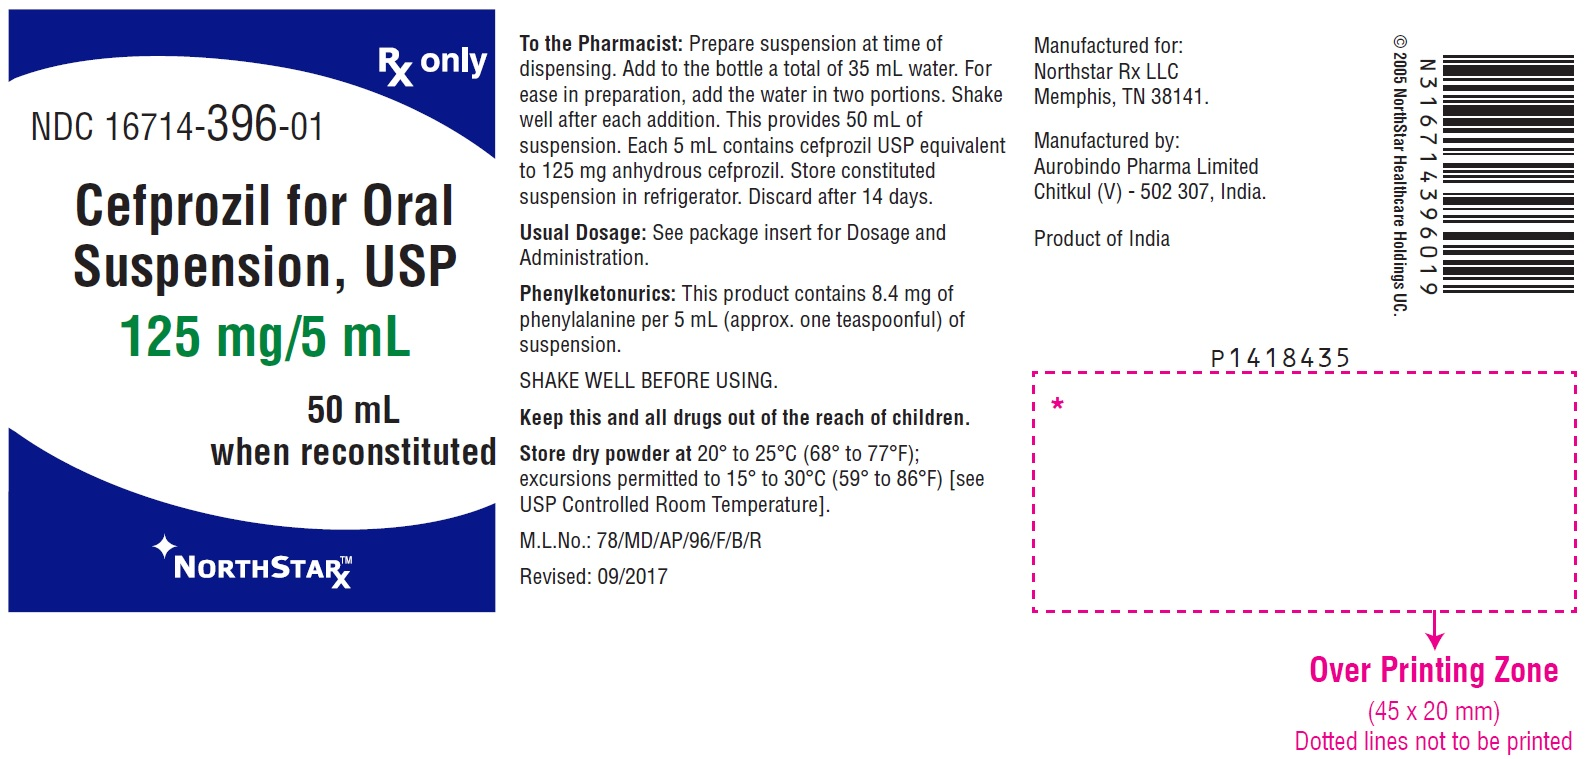 Cefprozil Powder, For Suspension [Northstar Rx Llc]